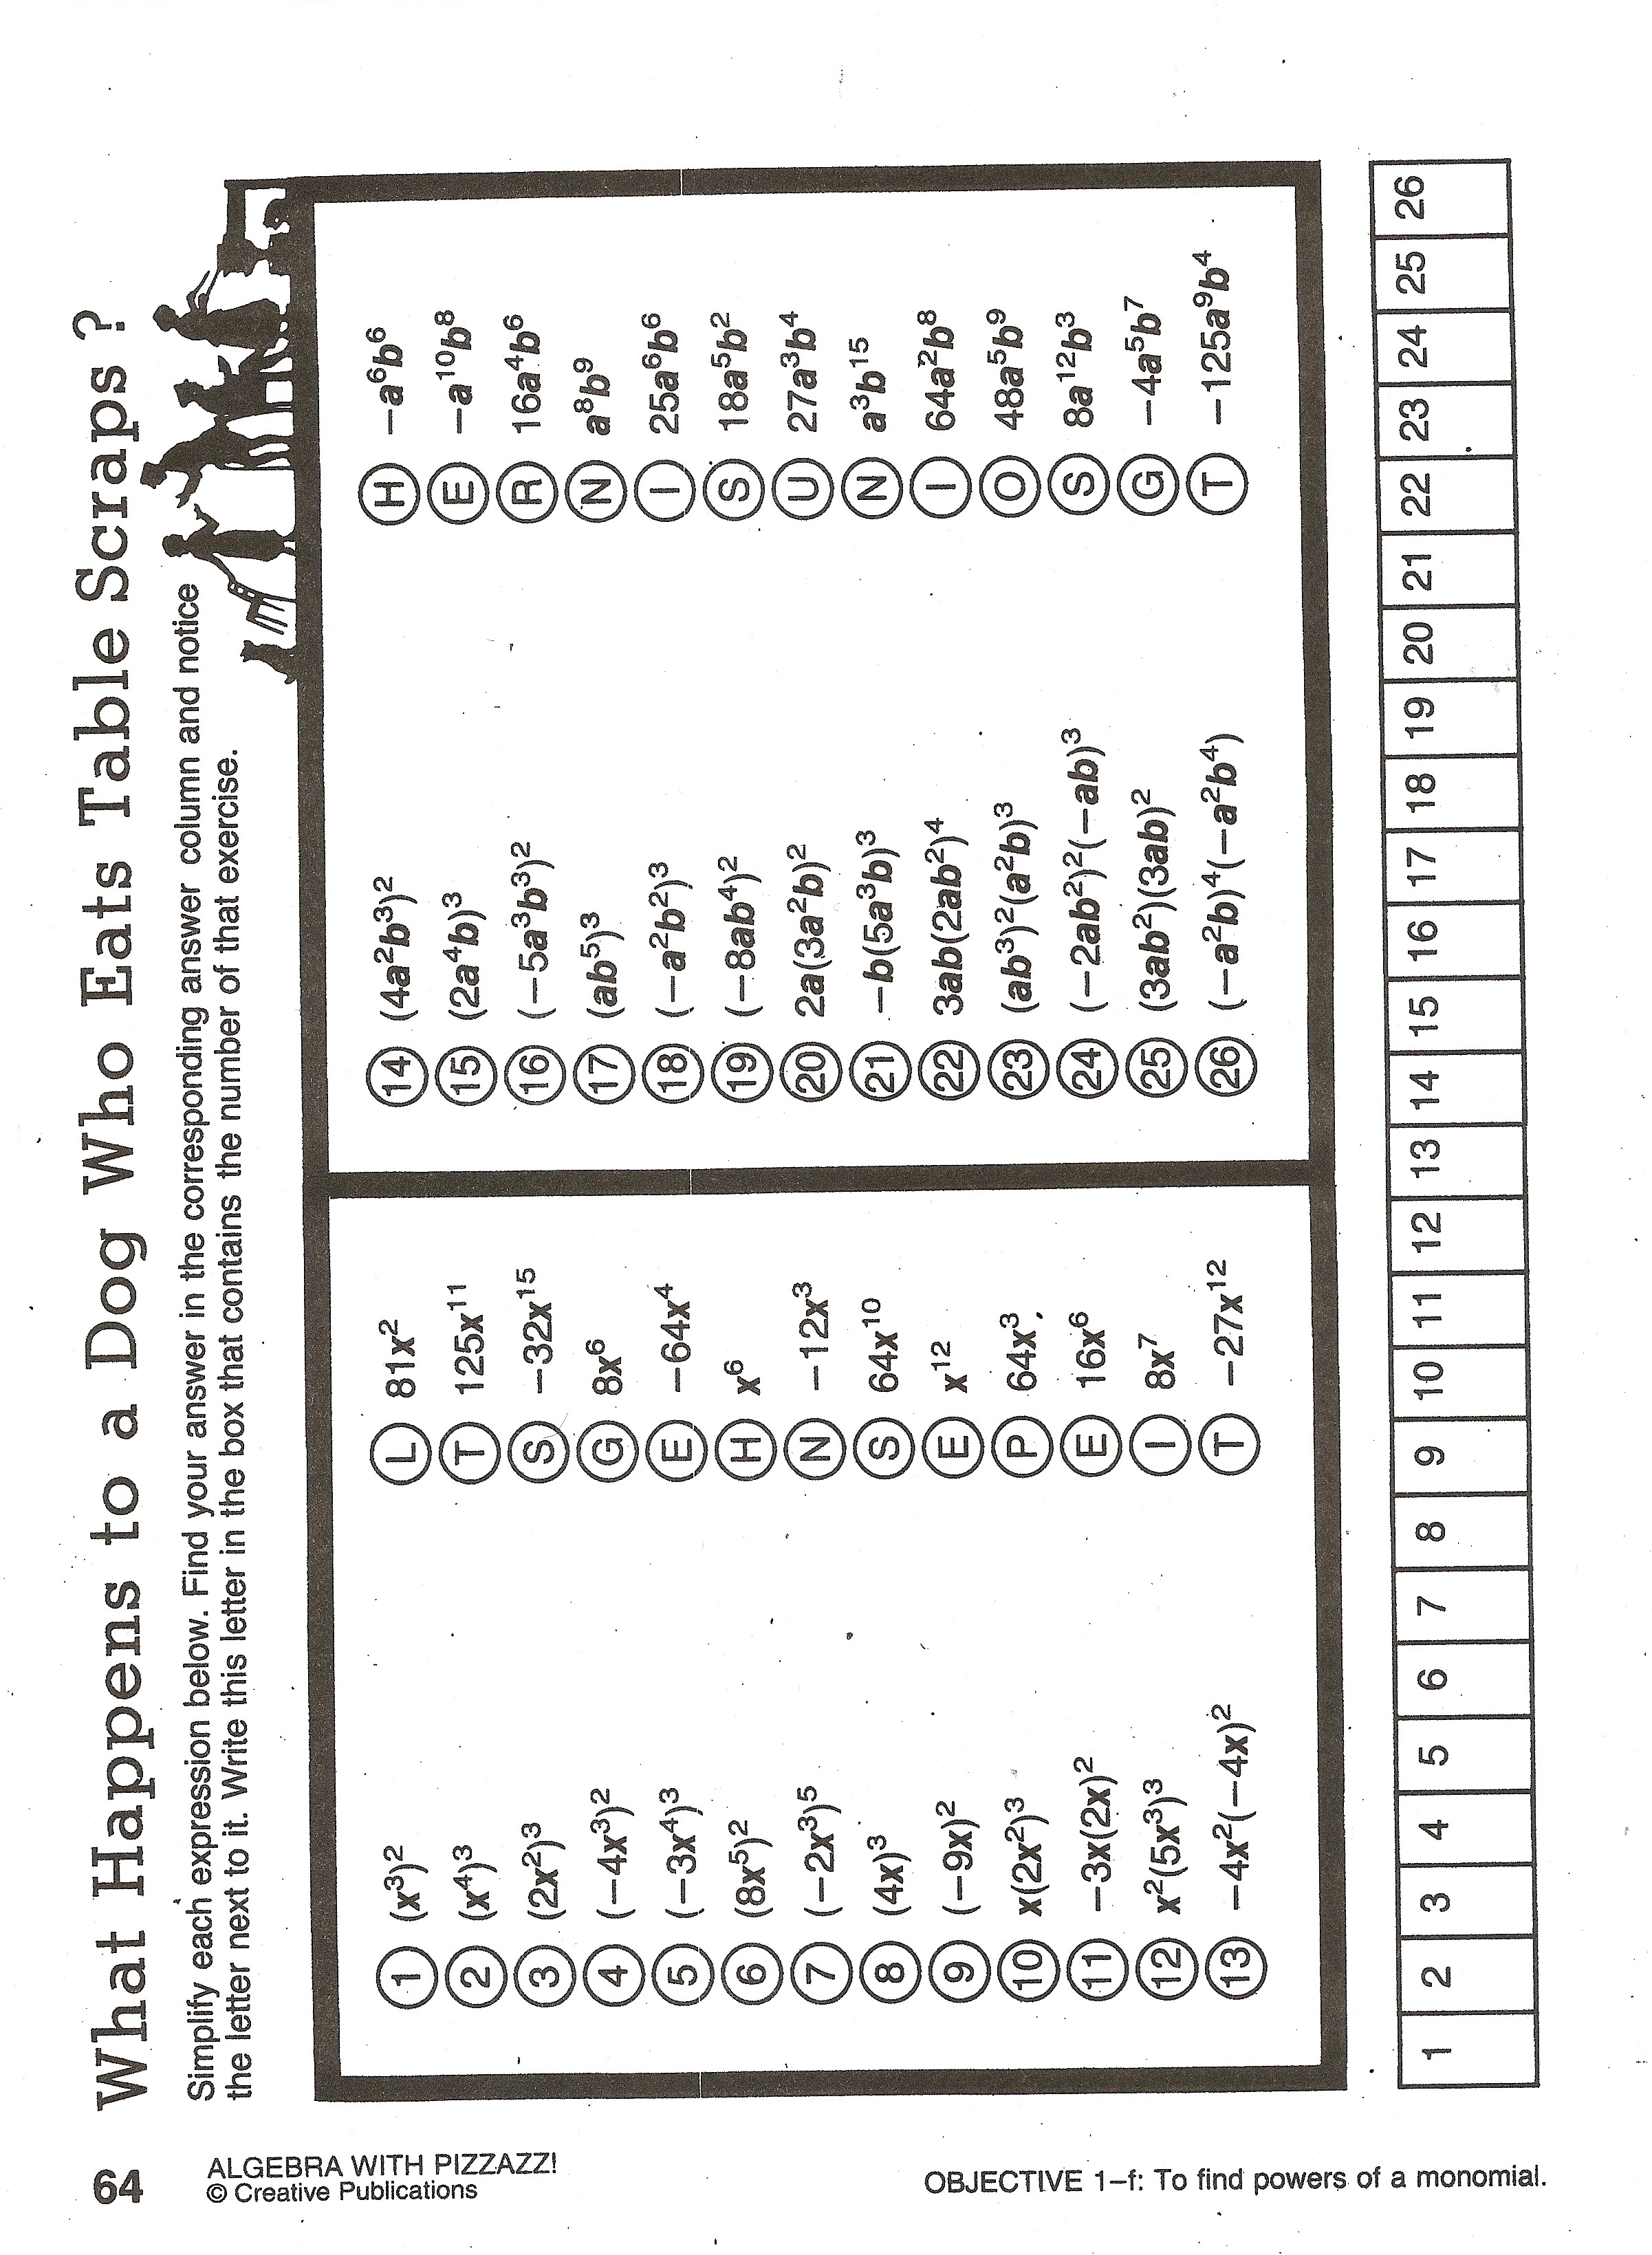 ... Pizzazz Worksheet Answers in addition Algebra With Pizzazz Worksheet